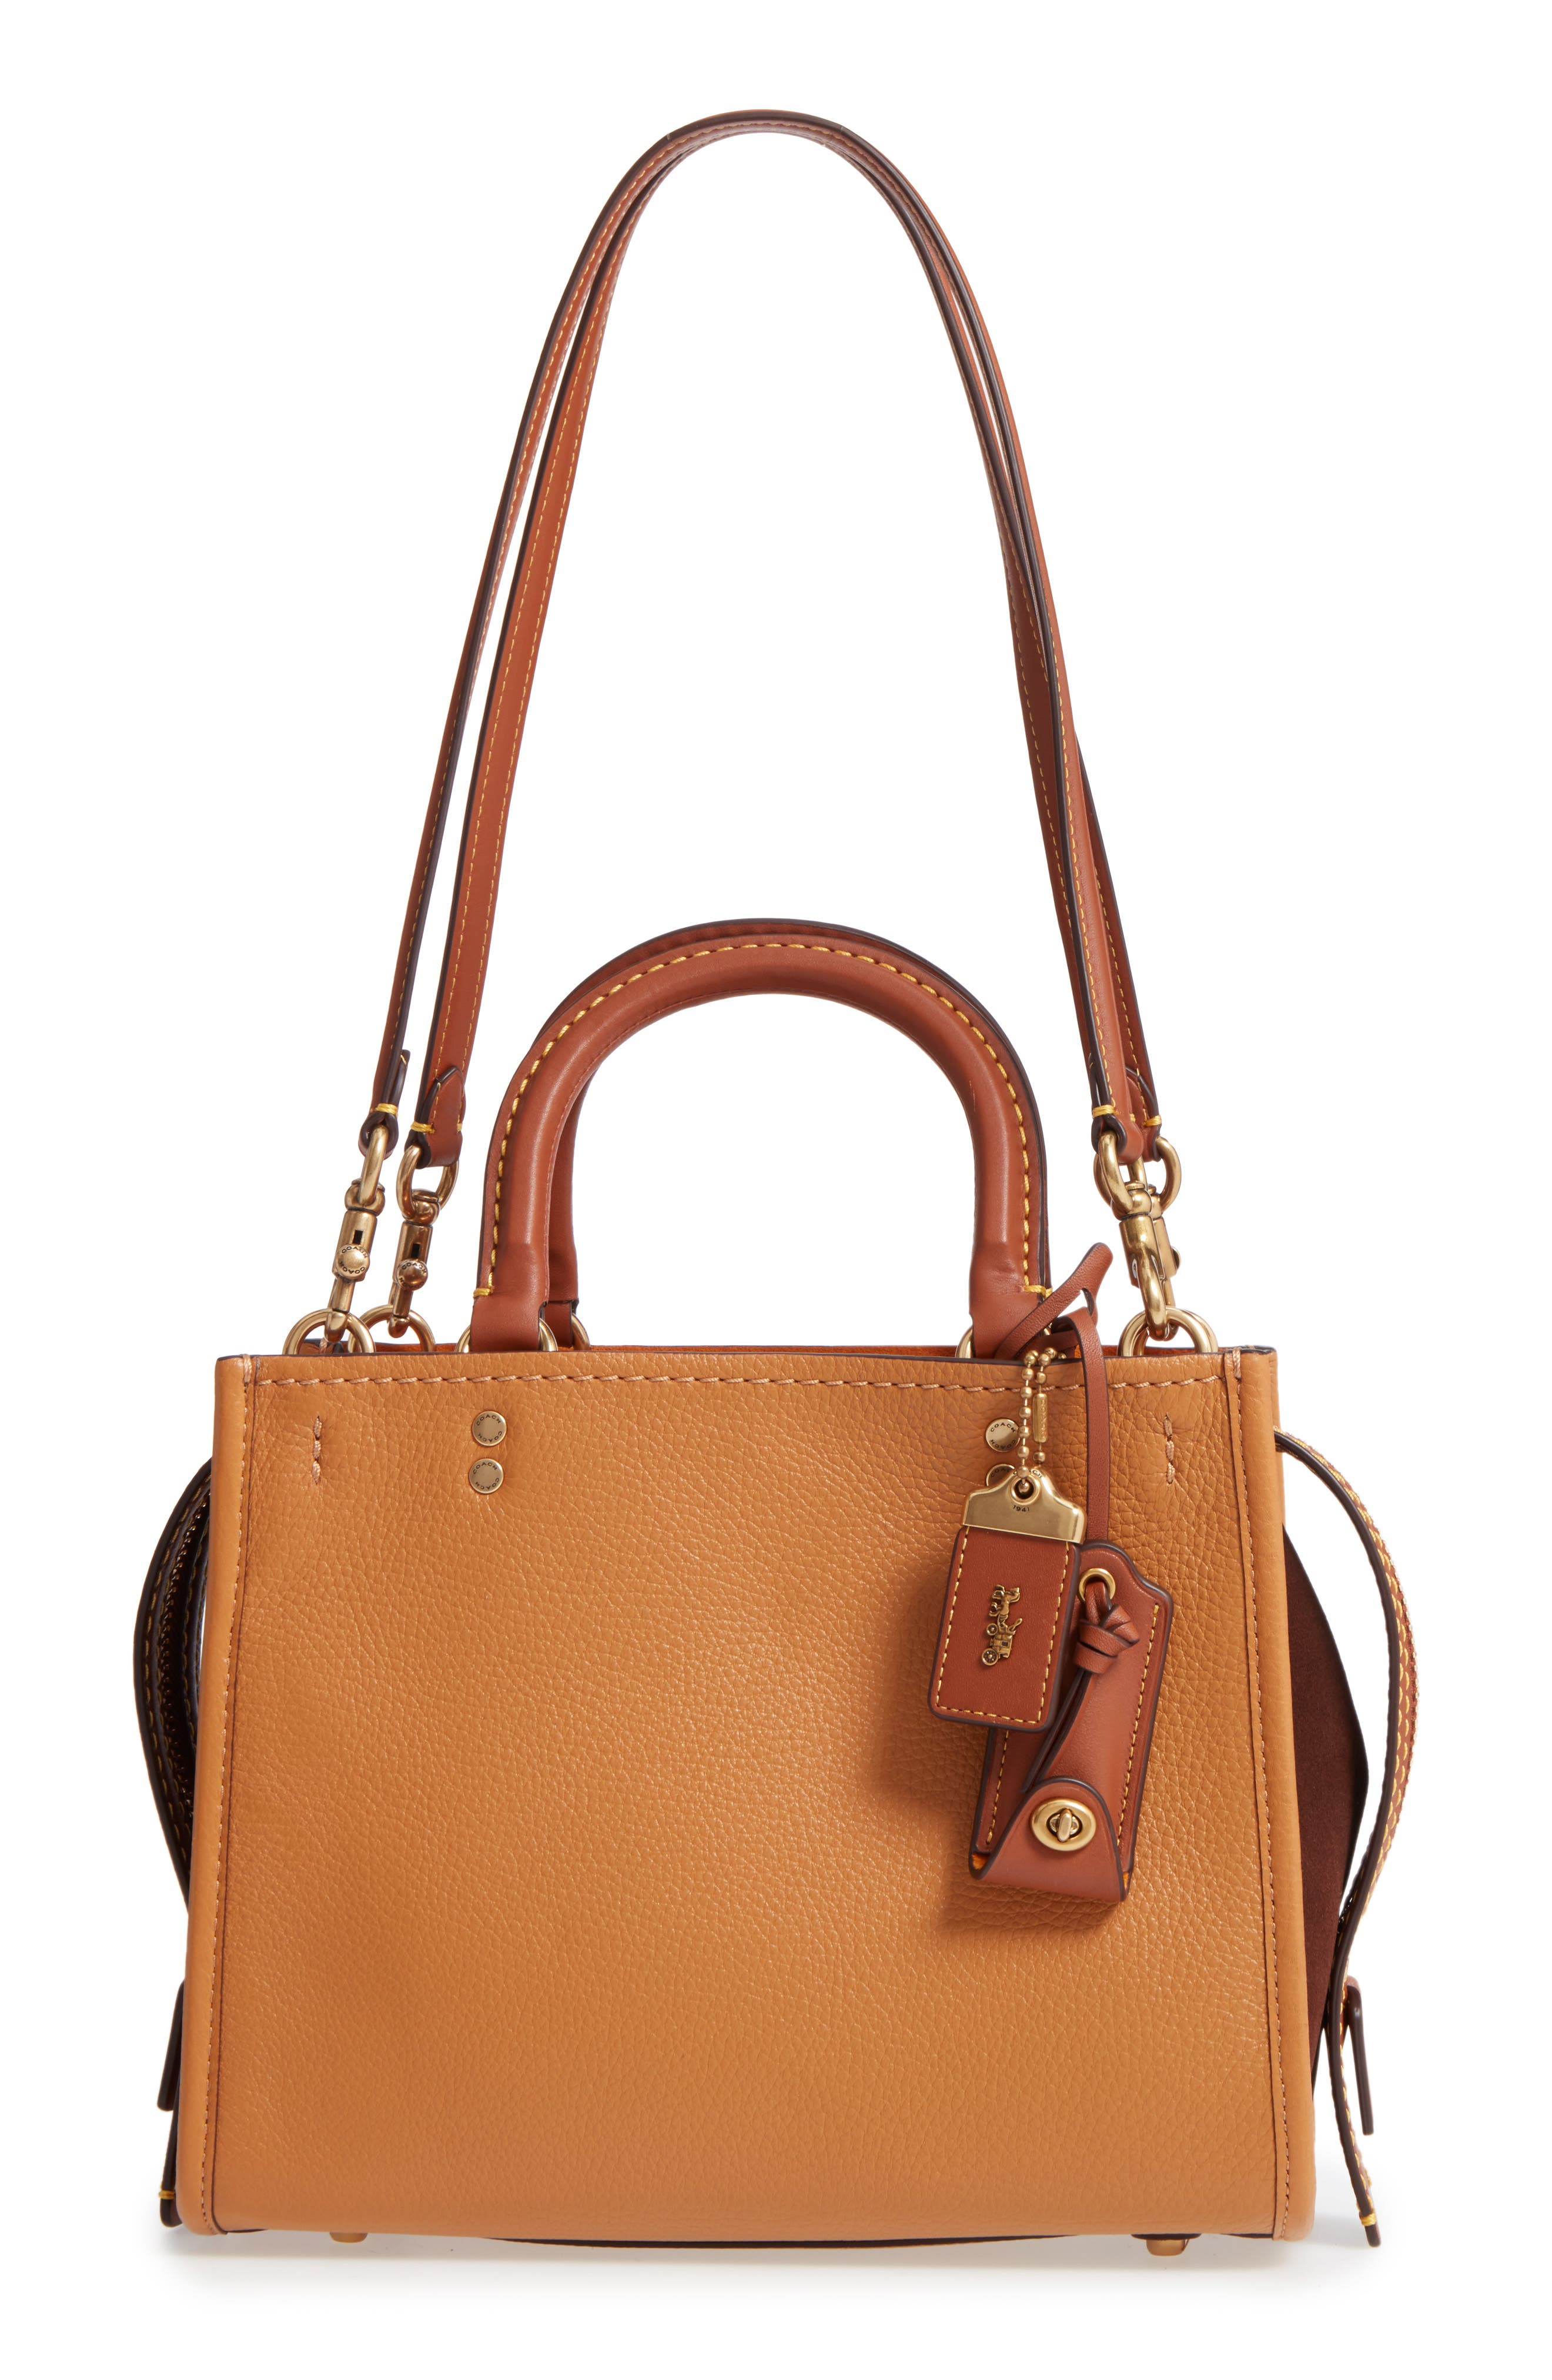 COACH 1941 Rogue 25 Mixed Leather Satchel